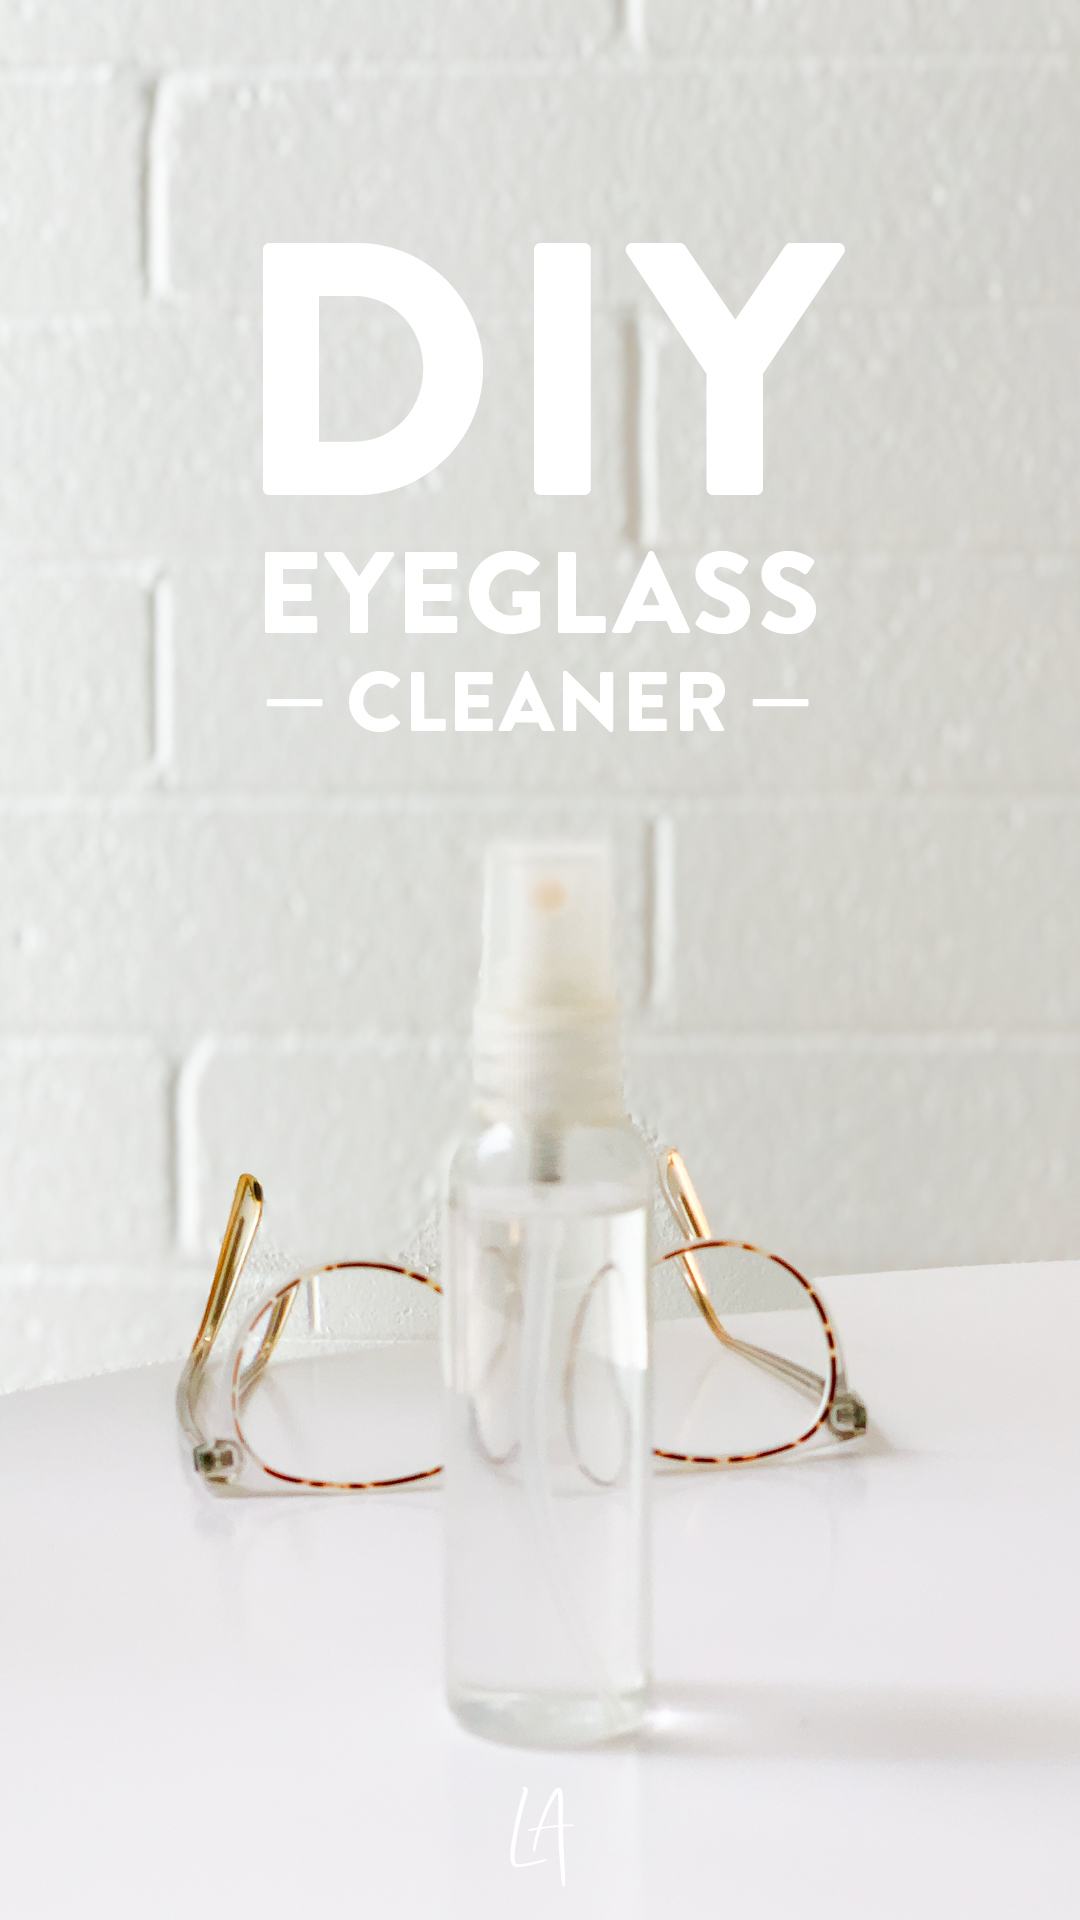 Make eyeglass cleaner at home